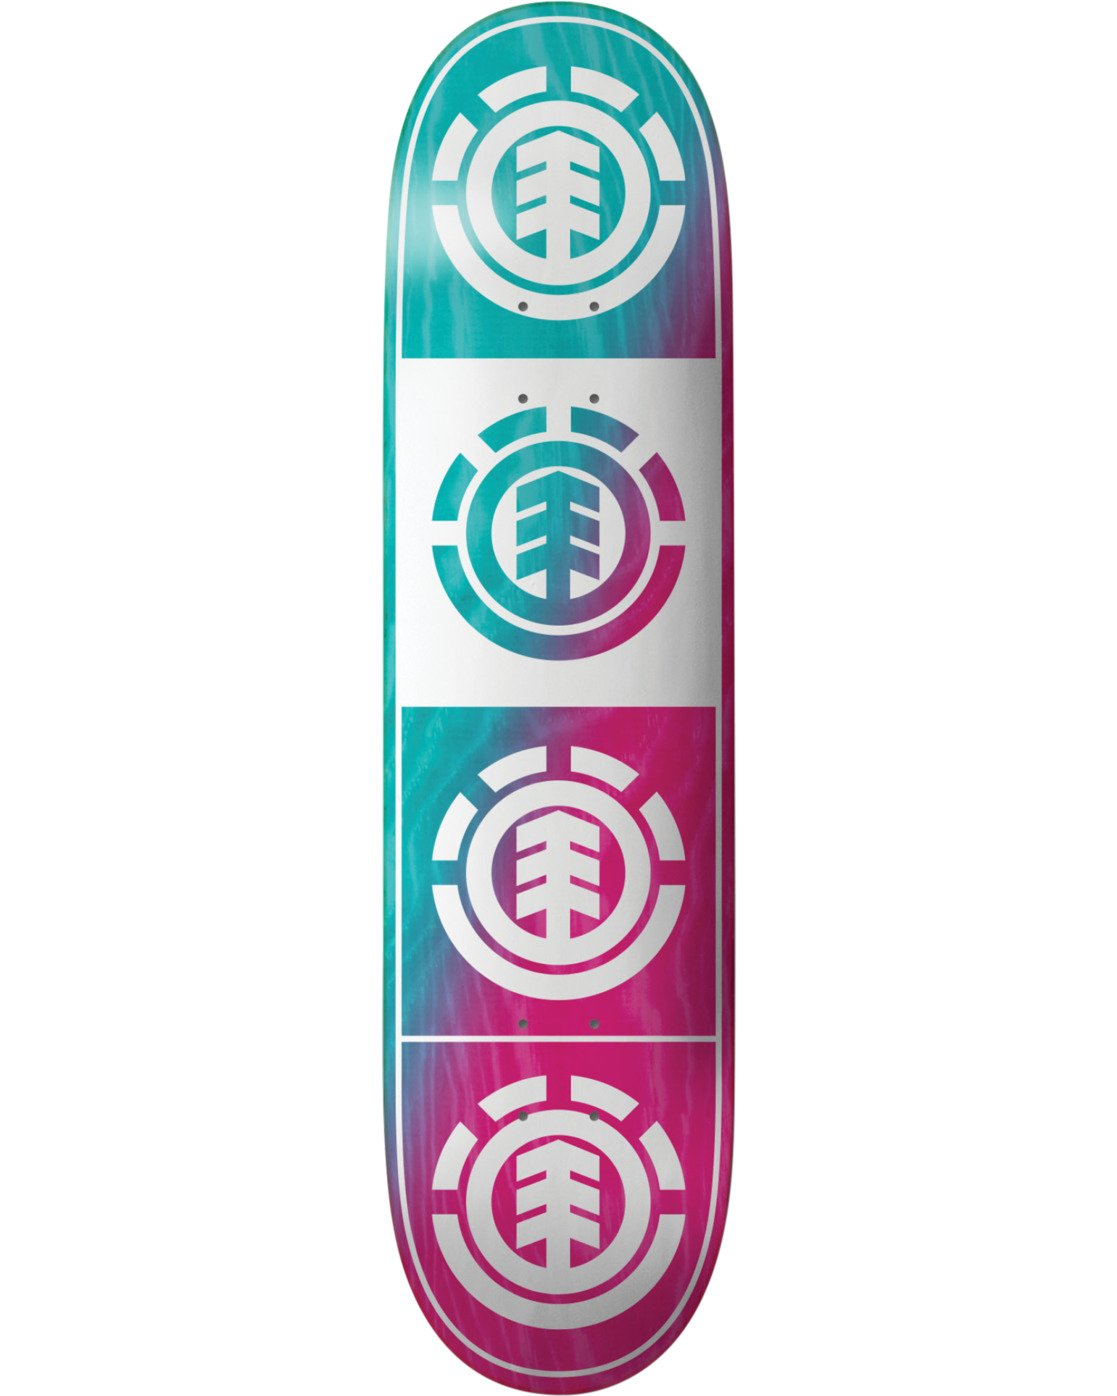 4 Quadrant Teal Pink Skateboard Deck  BDLG3RTP Element